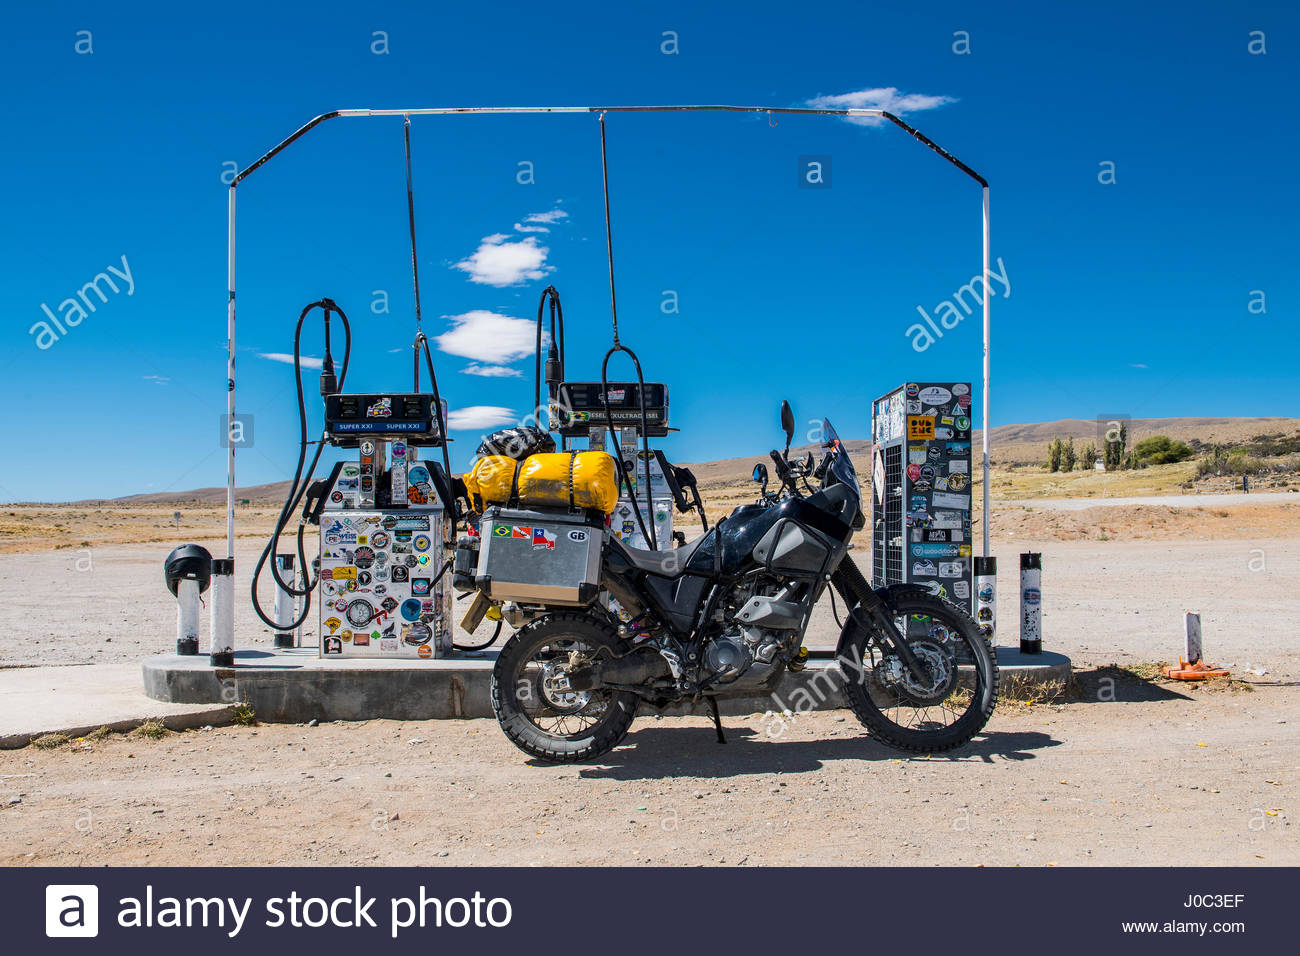 Touring motorbike at petrol station on Route 40, El Chalten, Route 40, Santa Cruz province, Argentina - Stock Image